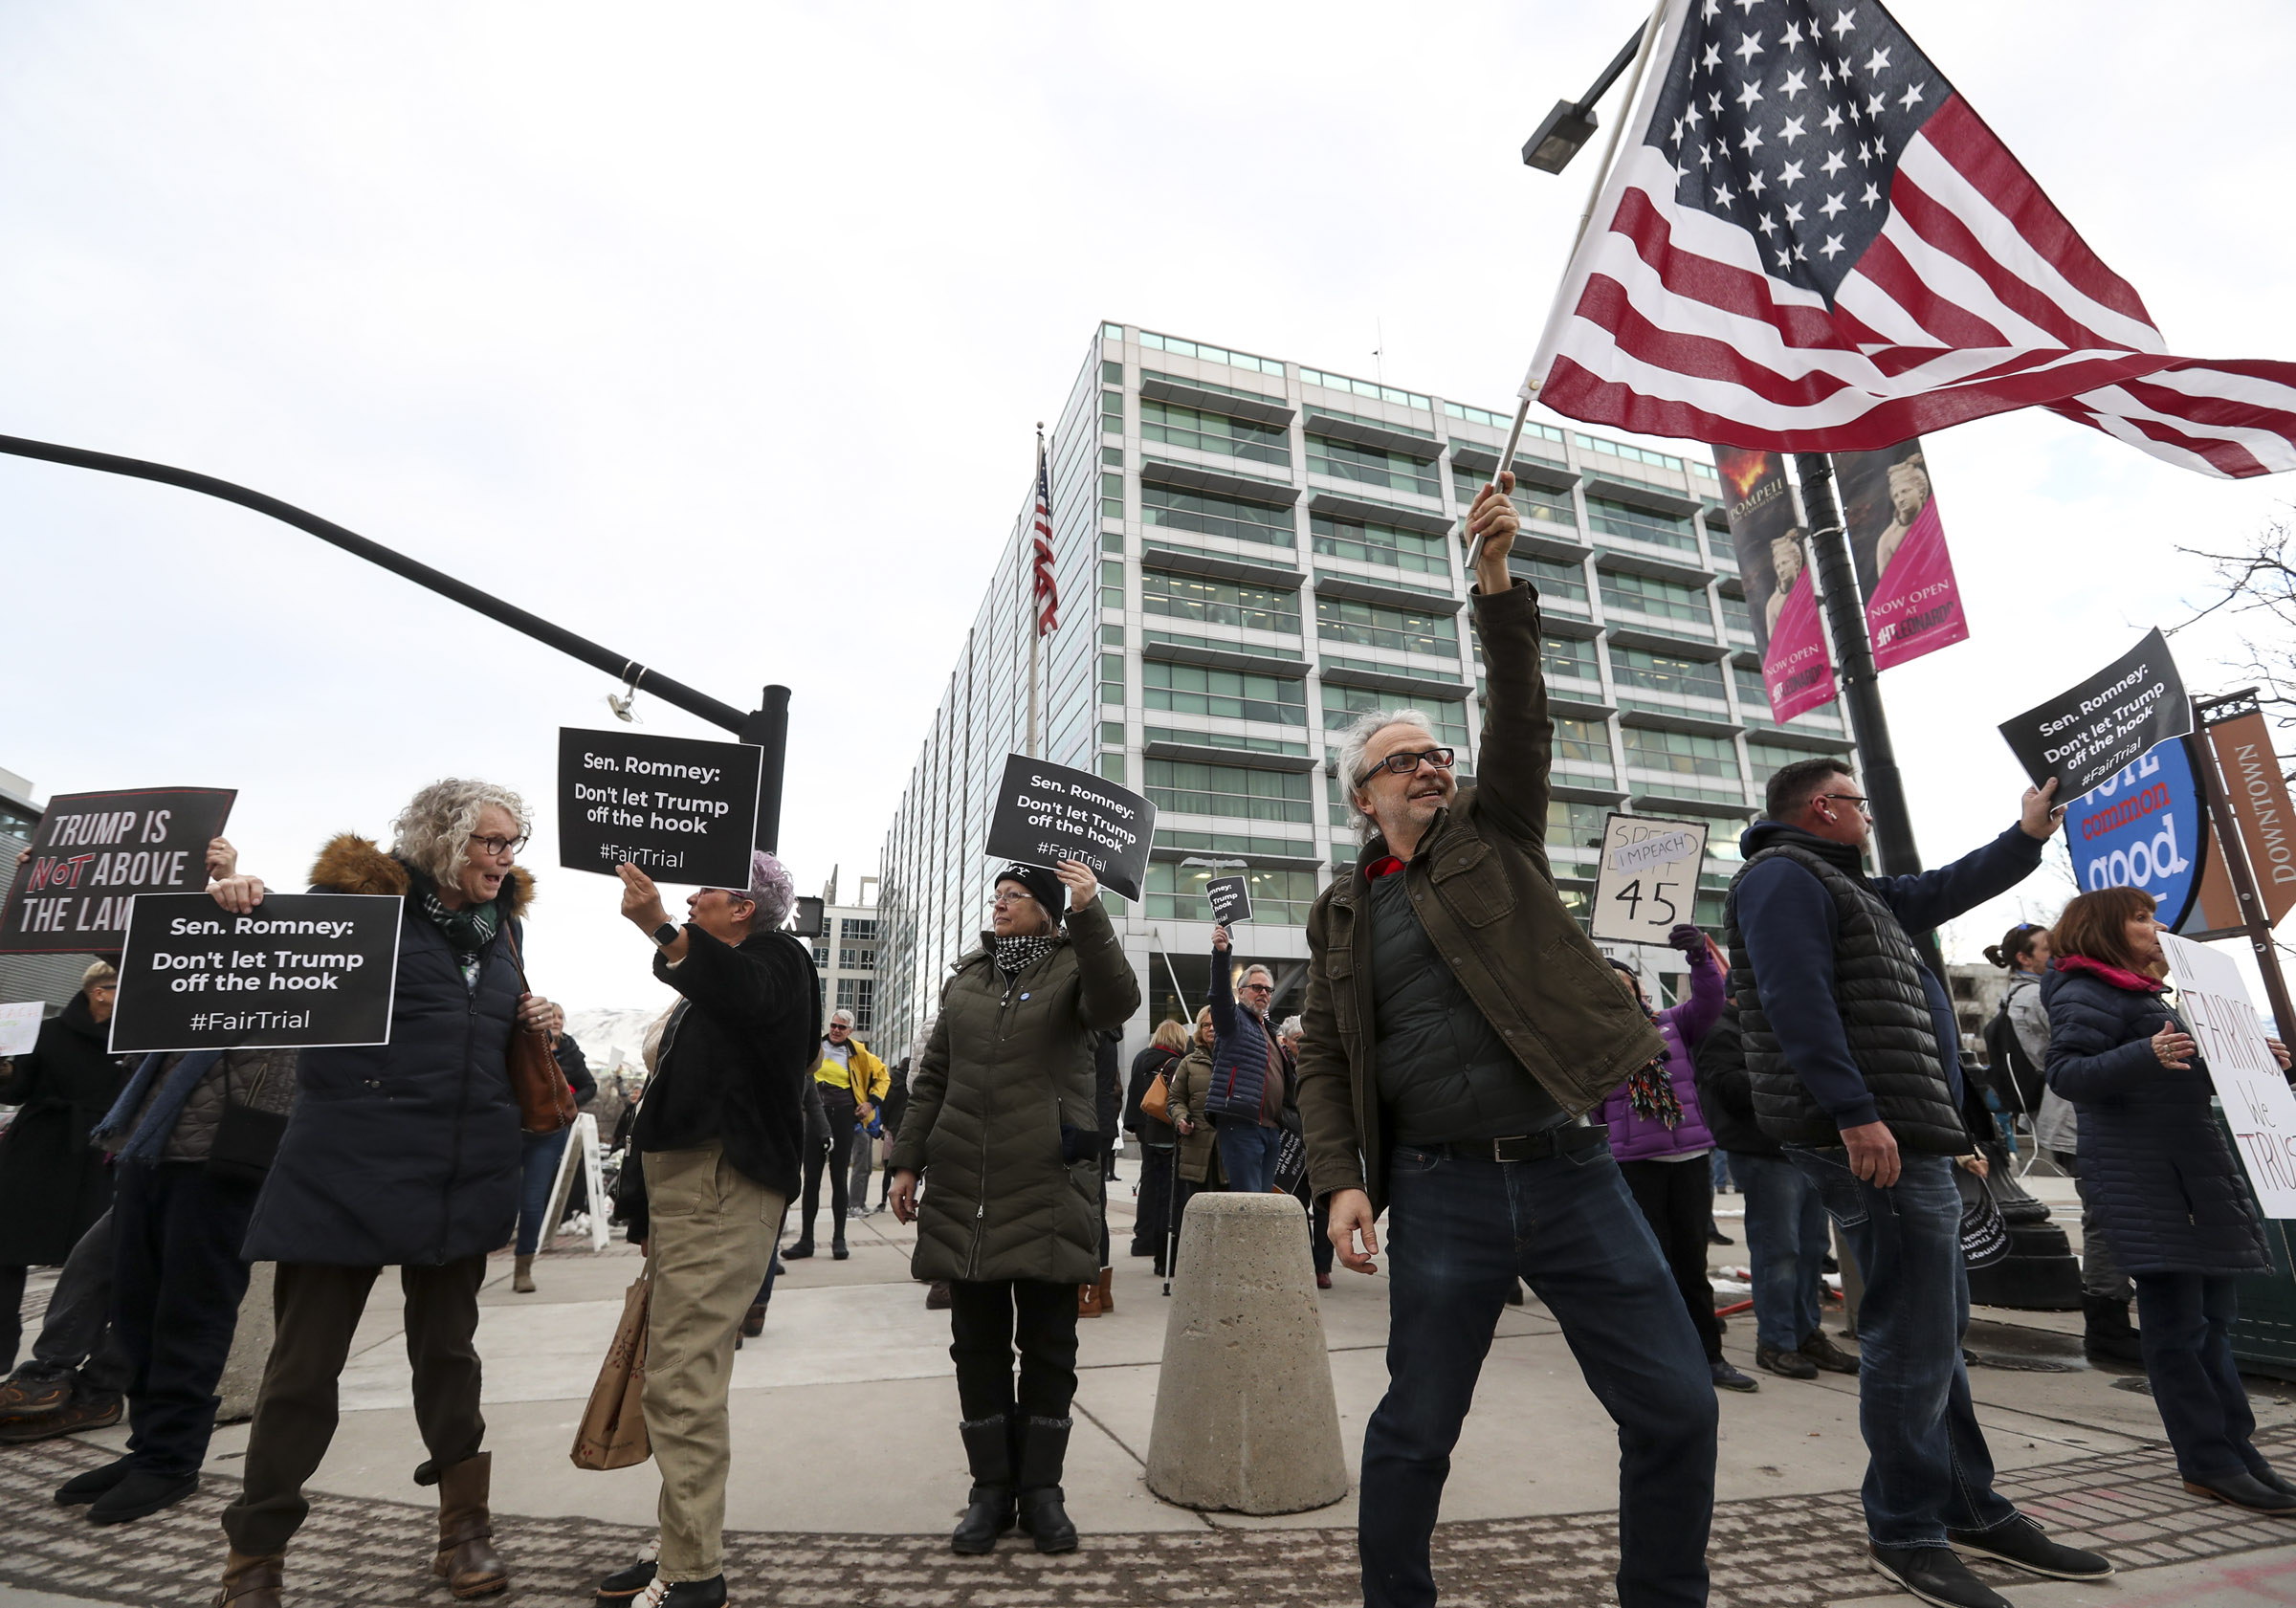 Samir Selmanozic , with Vote Common Good, waves an American flag as he and others rally at the Wallace G. Bennett Federal Building in Salt Lake City on Thursday, Jan. 16, 2020, for a full and fair impeachment trial of President Donald Trump.